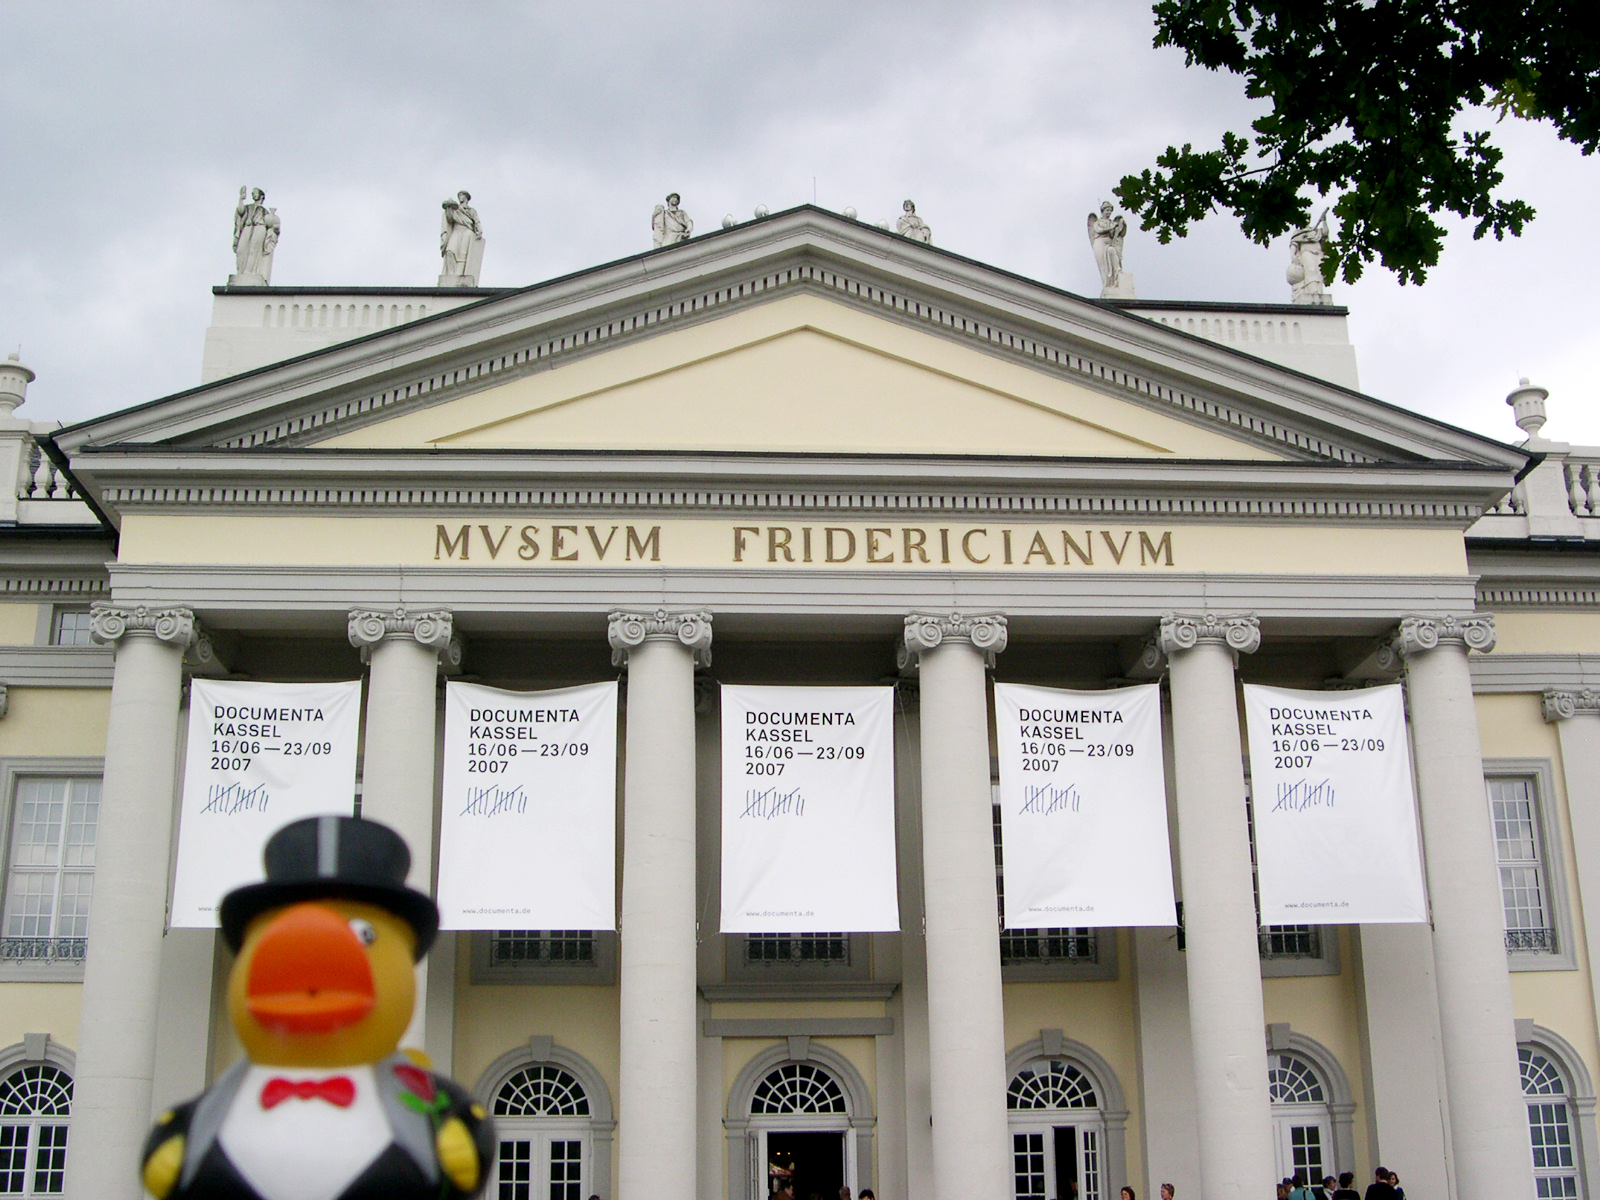 Photo: Fridericianum